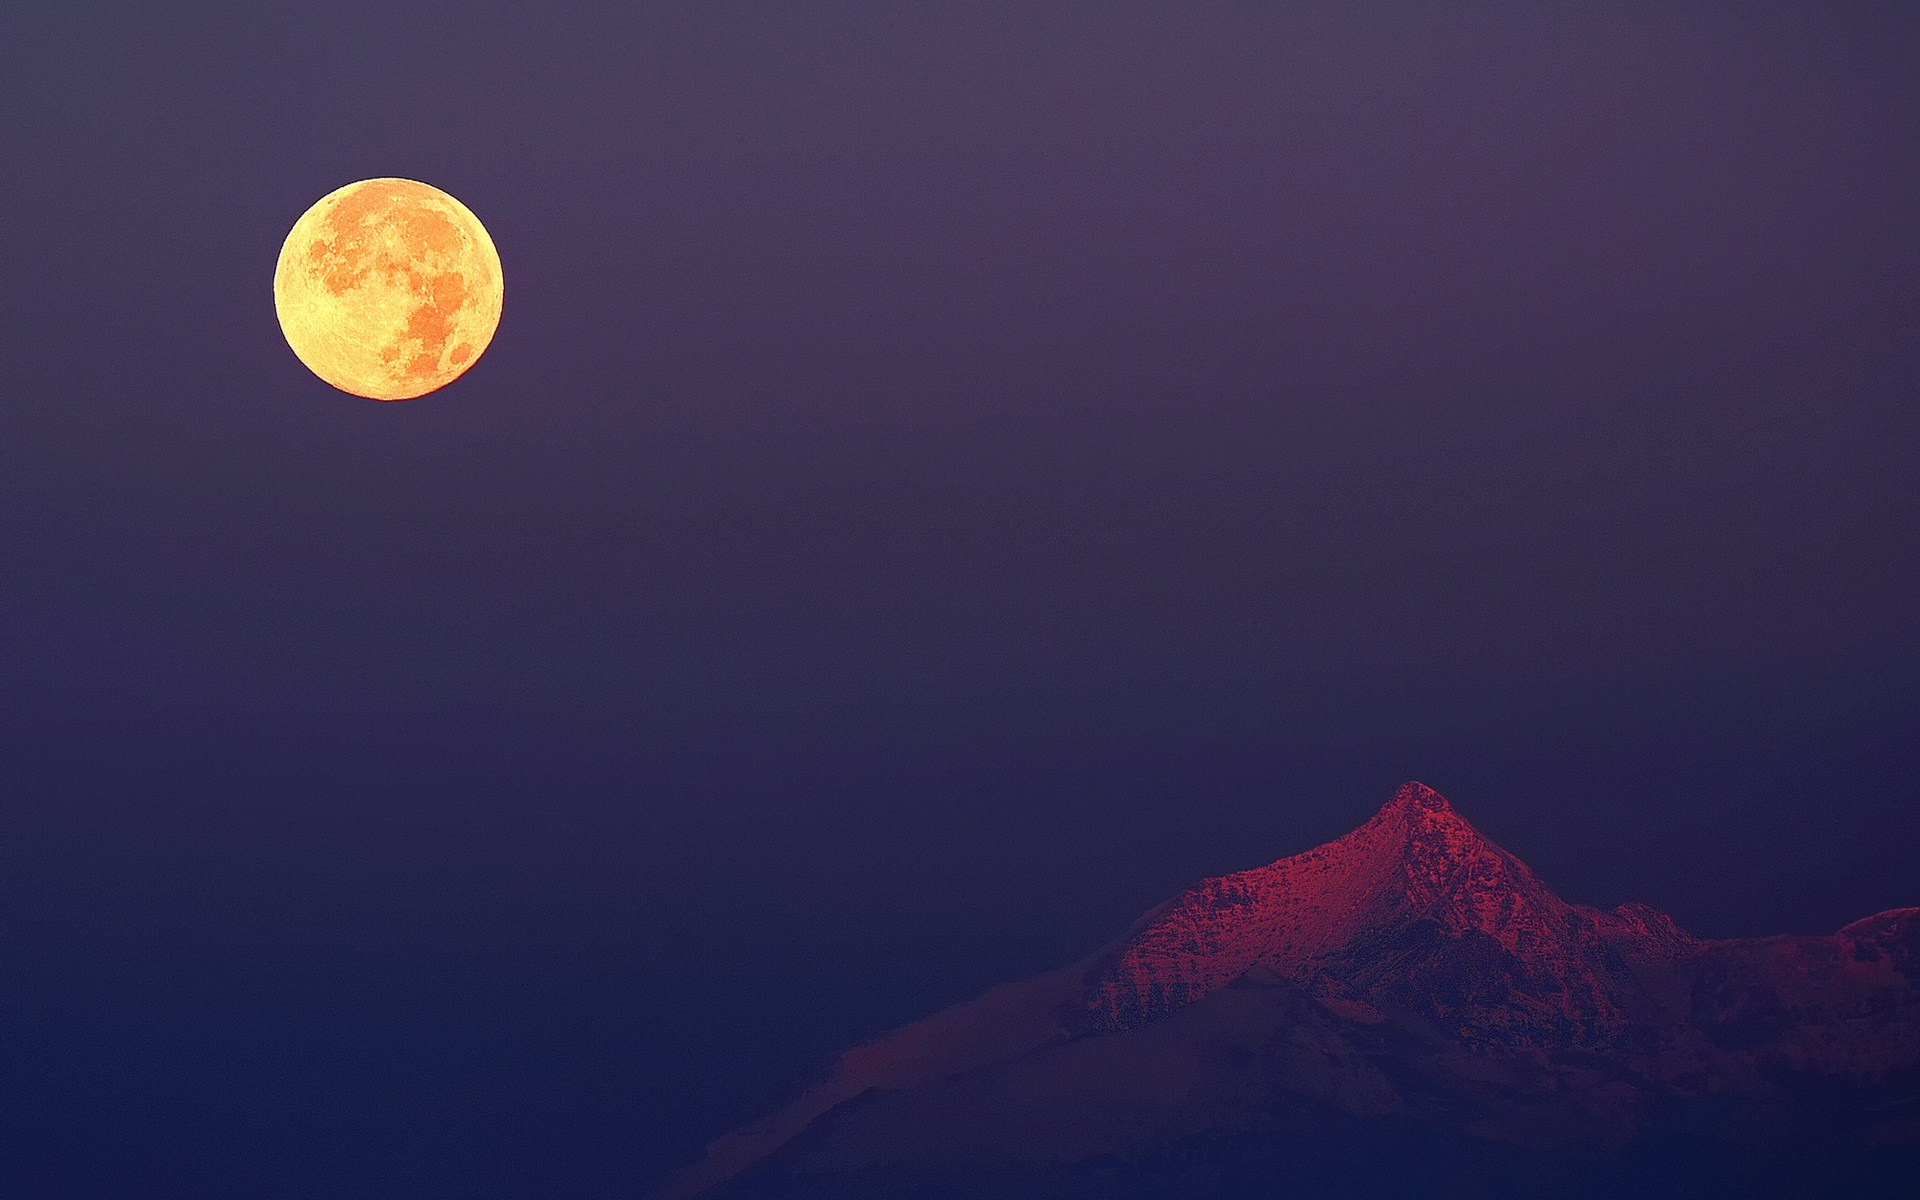 mountain wallpaper moon